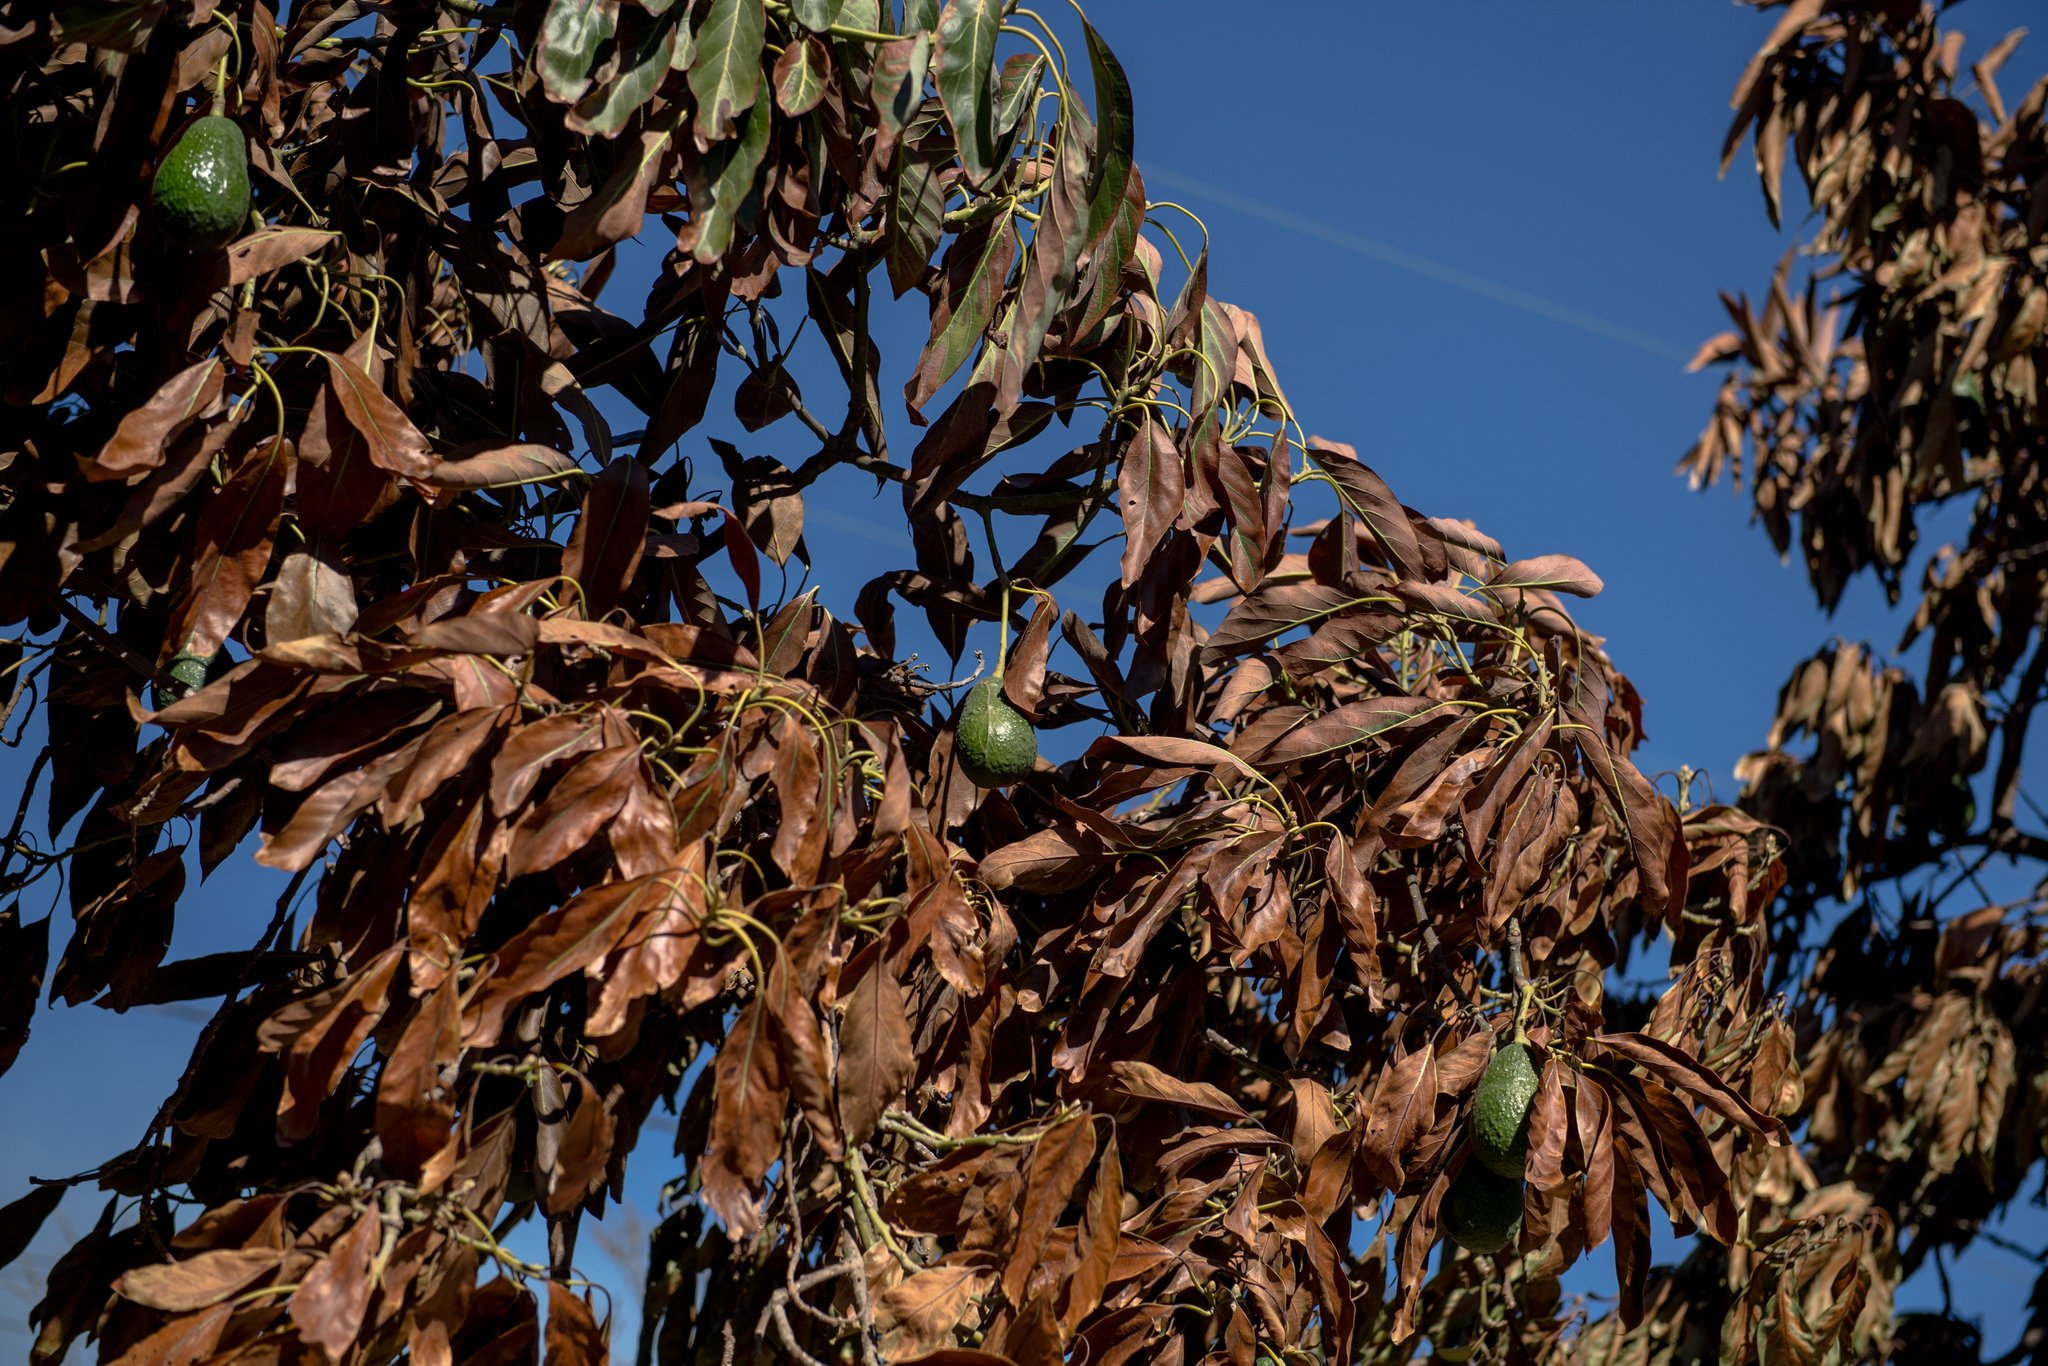 Burnt avocado trees at Brokaw Ranch outside of Ventura, CA. Image from Hillary Swift of the New York Times.